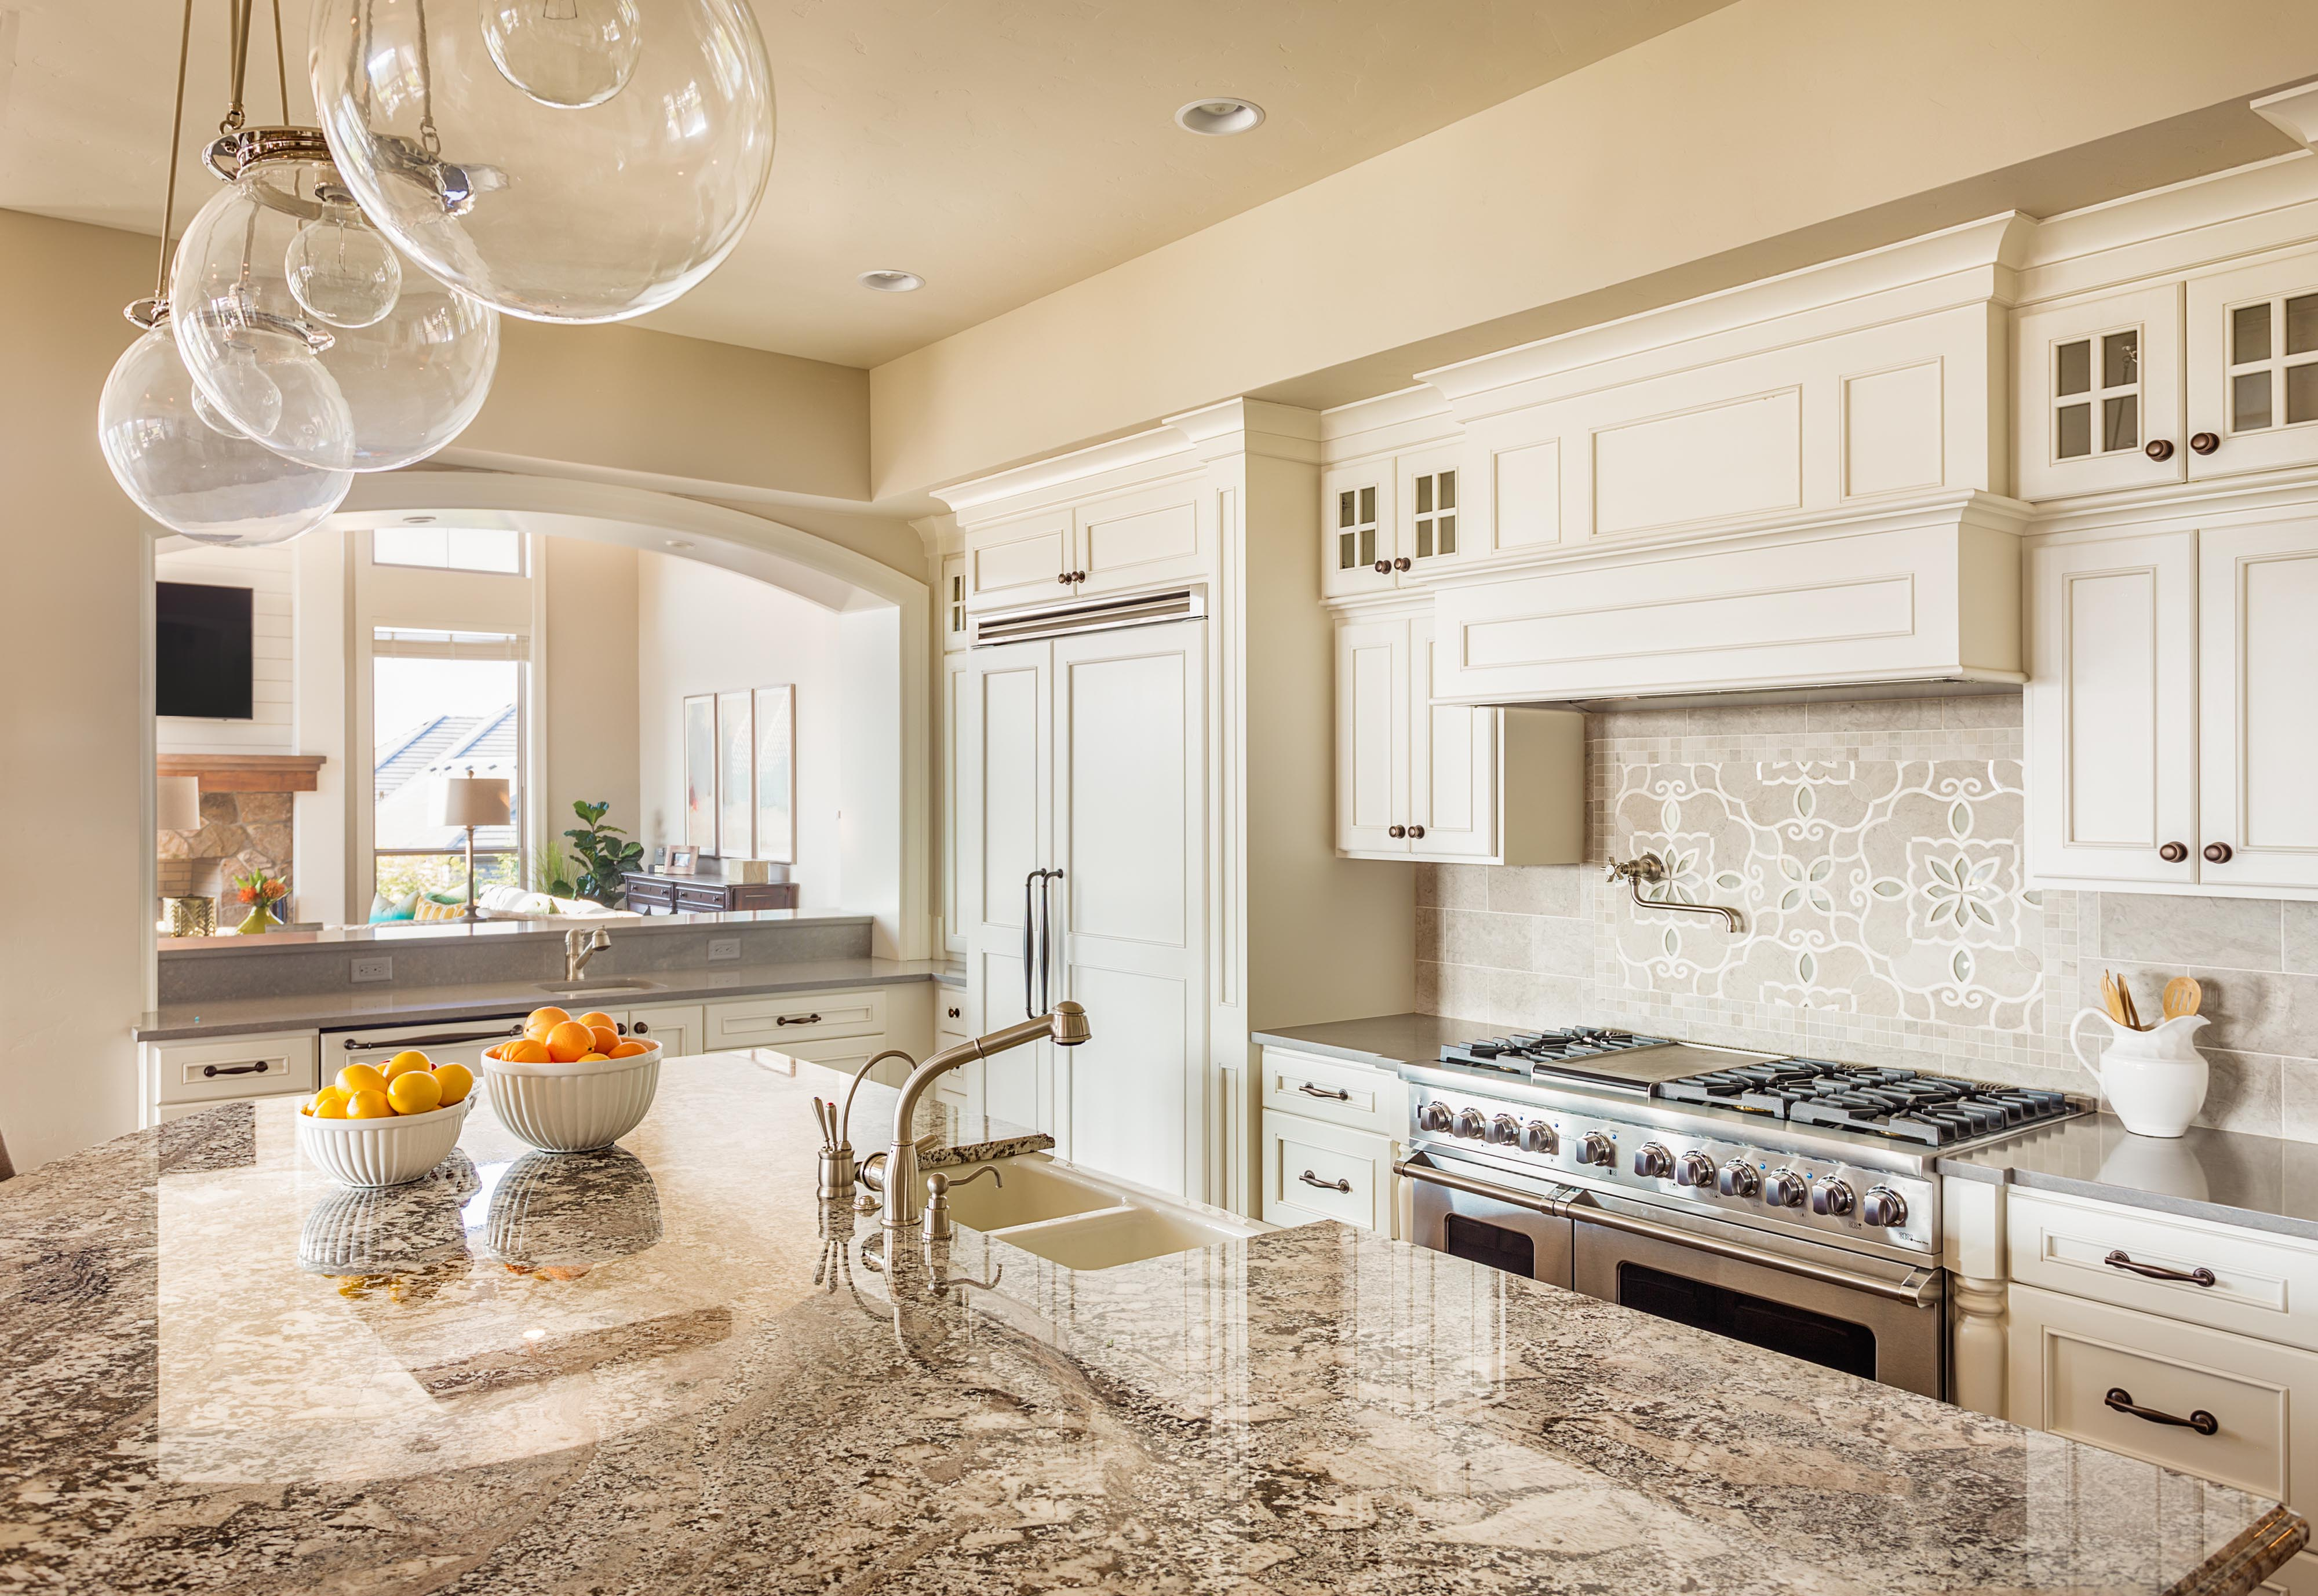 Gorgeous Kitchen Renovation In Potomac Maryland: Kitchen Remodeling, Renovation And Design